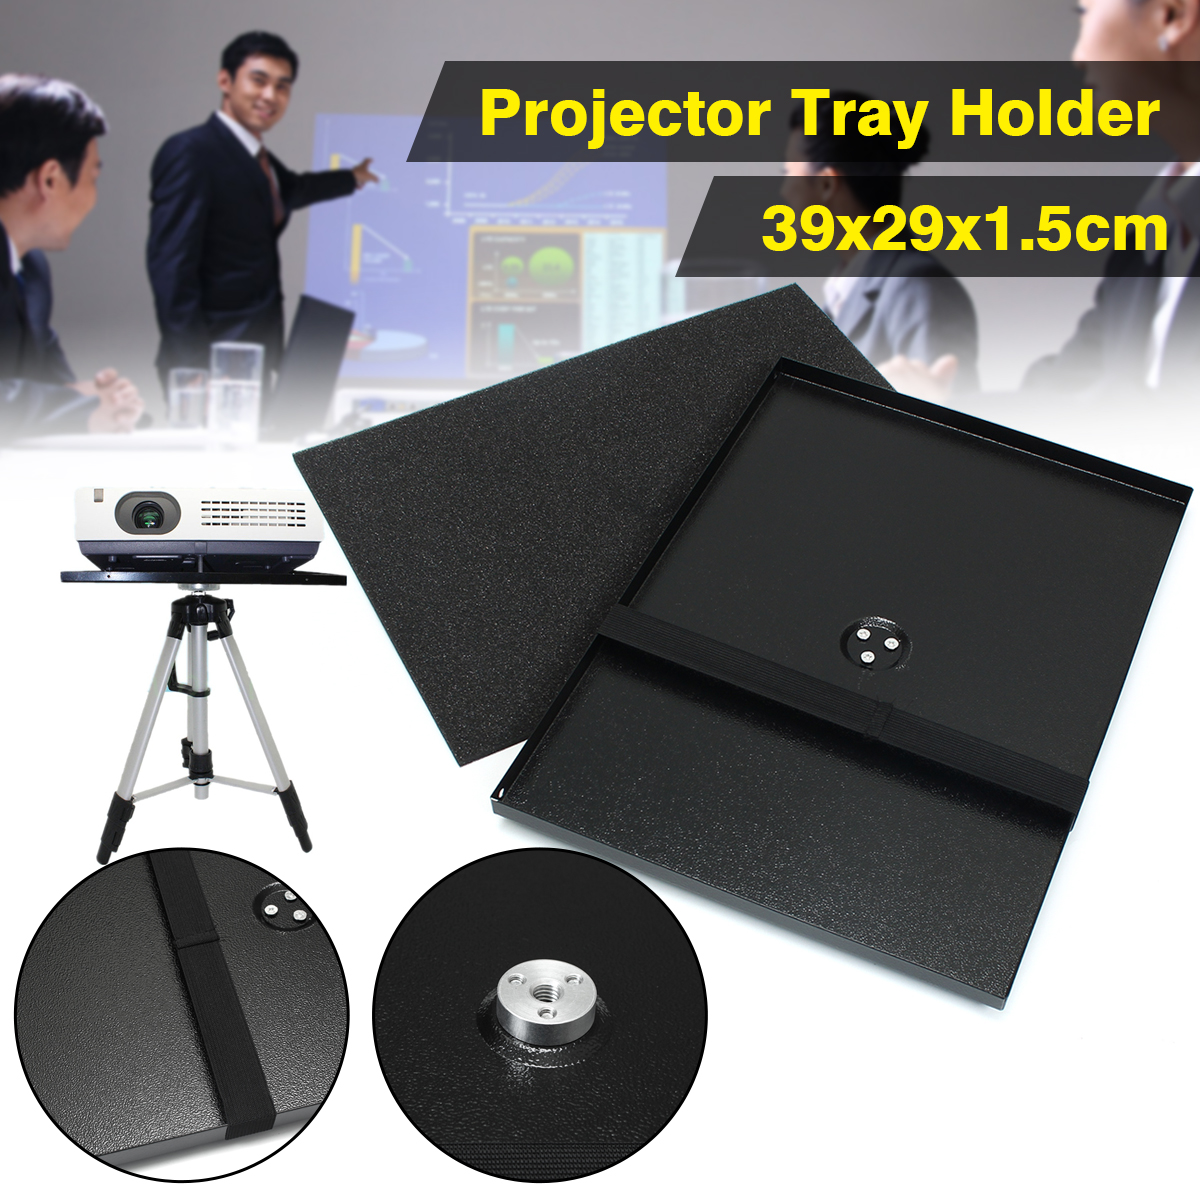 Metal Projector Tray Holder For 1/4 3/8 Screw Tripod & 7-15 Laptop for Projector Monitors Rugged & Durable Solid StrongMetal Projector Tray Holder For 1/4 3/8 Screw Tripod & 7-15 Laptop for Projector Monitors Rugged & Durable Solid Strong